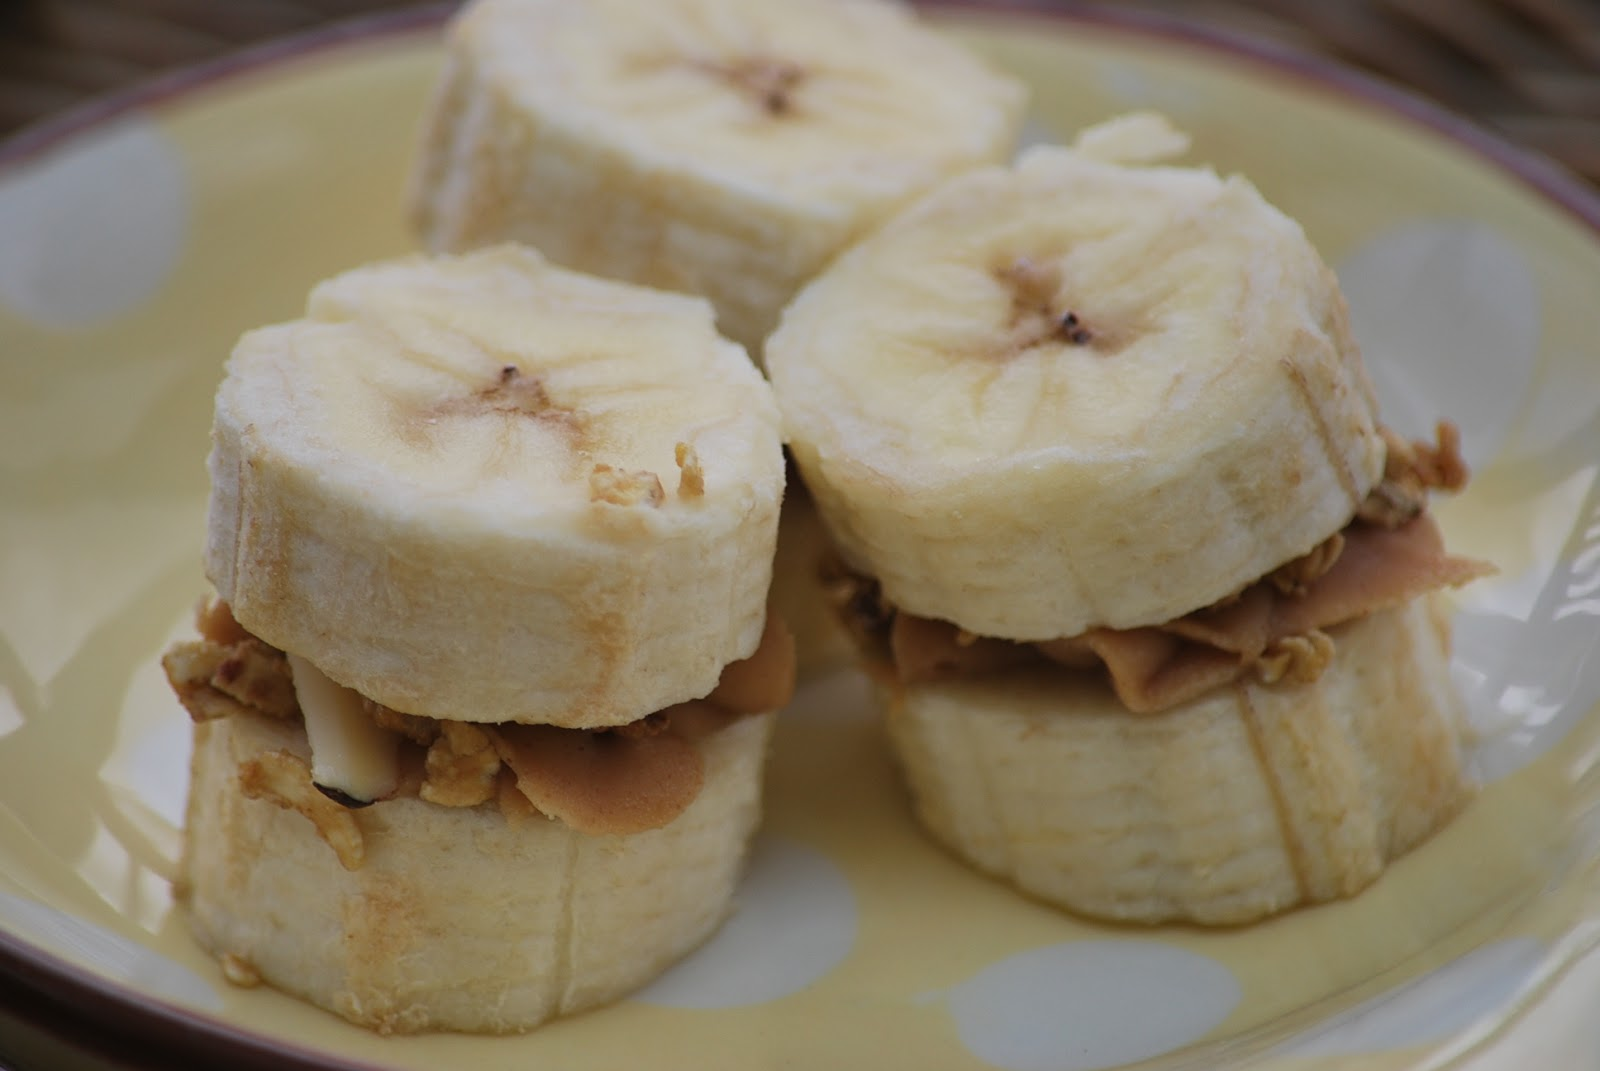 transfer the banana peanut butter bites to a Tupperware container ...